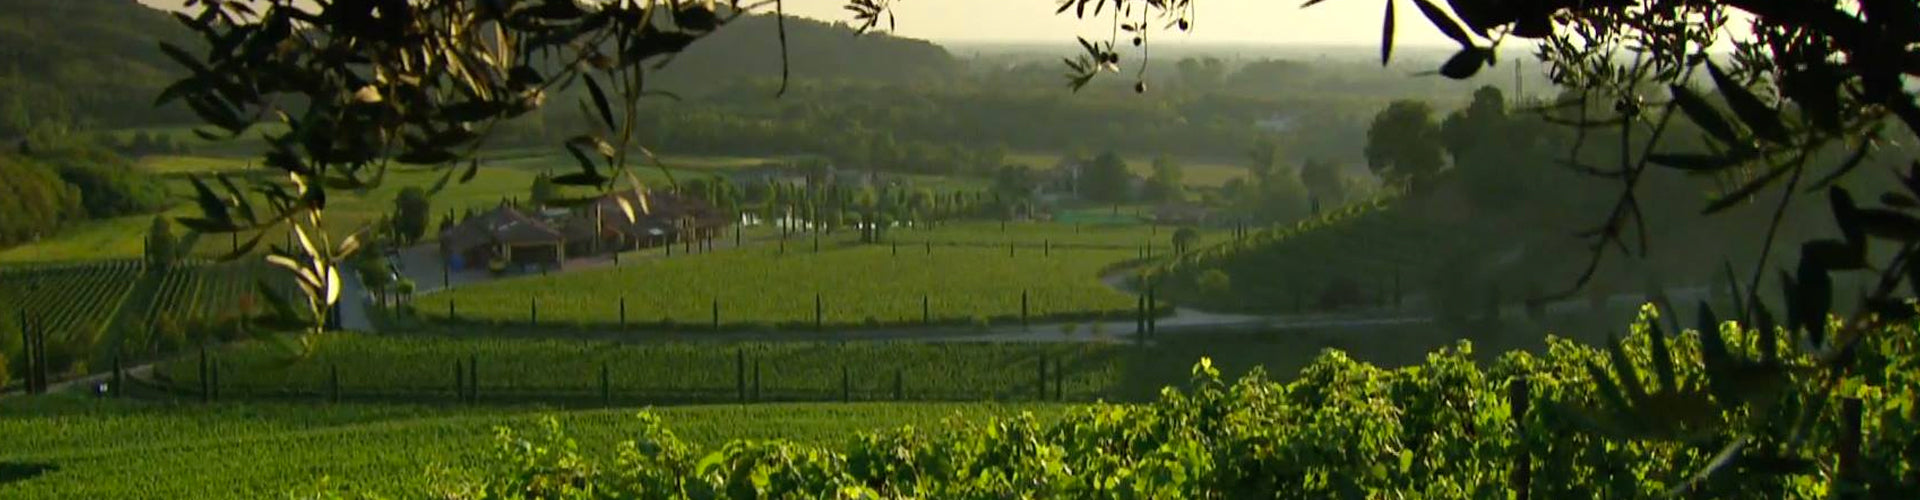 Jermann Winery and Vineyards in Friuli